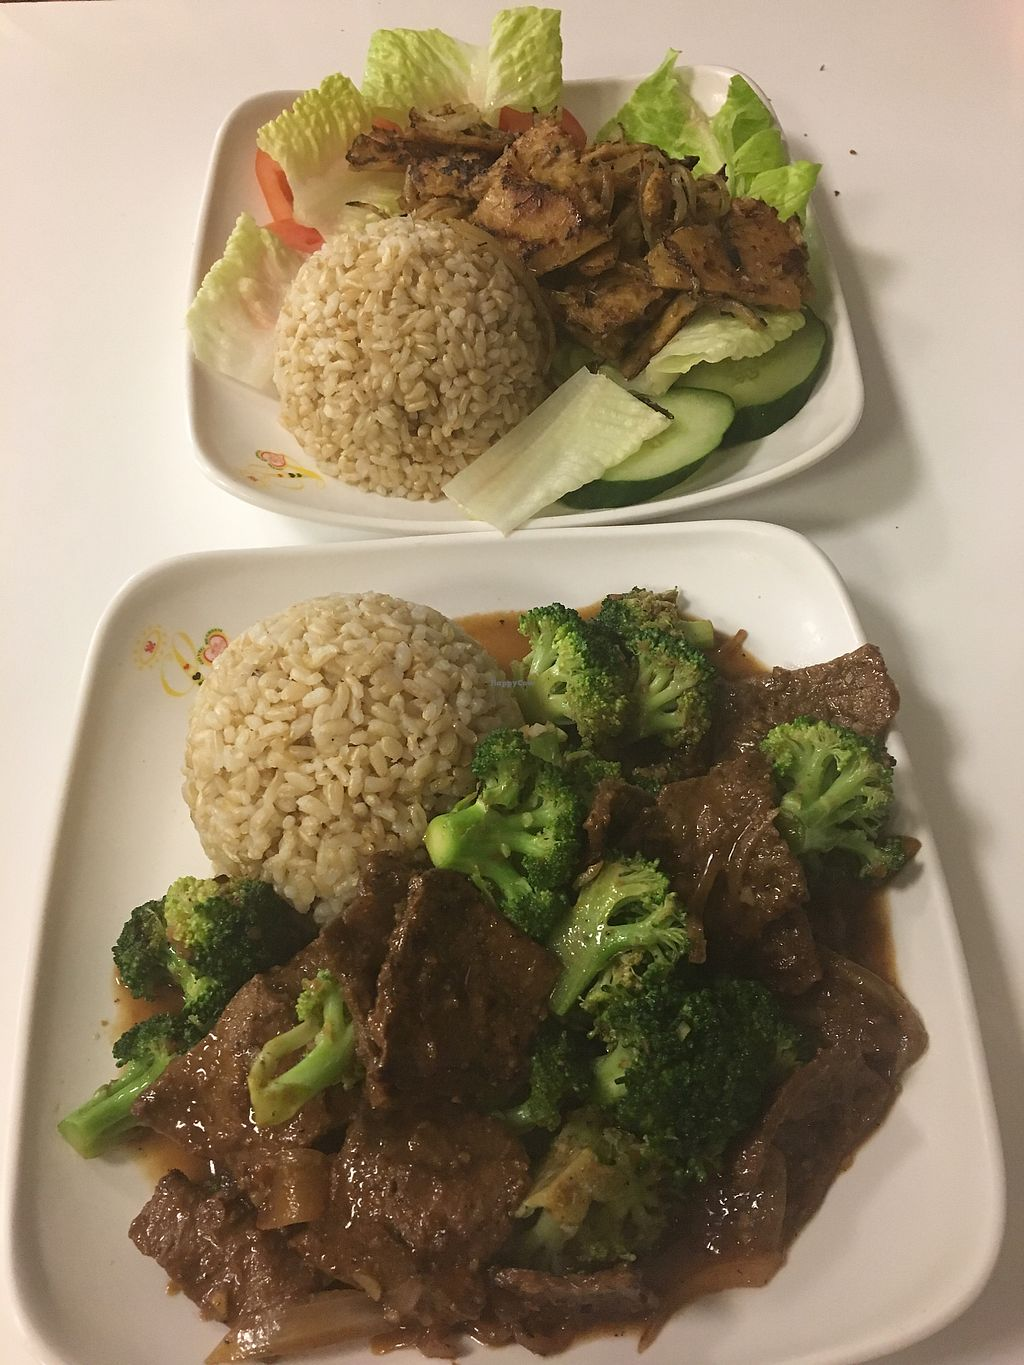 """Photo of Loving Hut - Honolulu South King St  by <a href=""""/members/profile/Amw722"""">Amw722</a> <br/>Lemongrass tofu and Brocco pua. Out of this world!  <br/> September 19, 2017  - <a href='/contact/abuse/image/22933/305930'>Report</a>"""